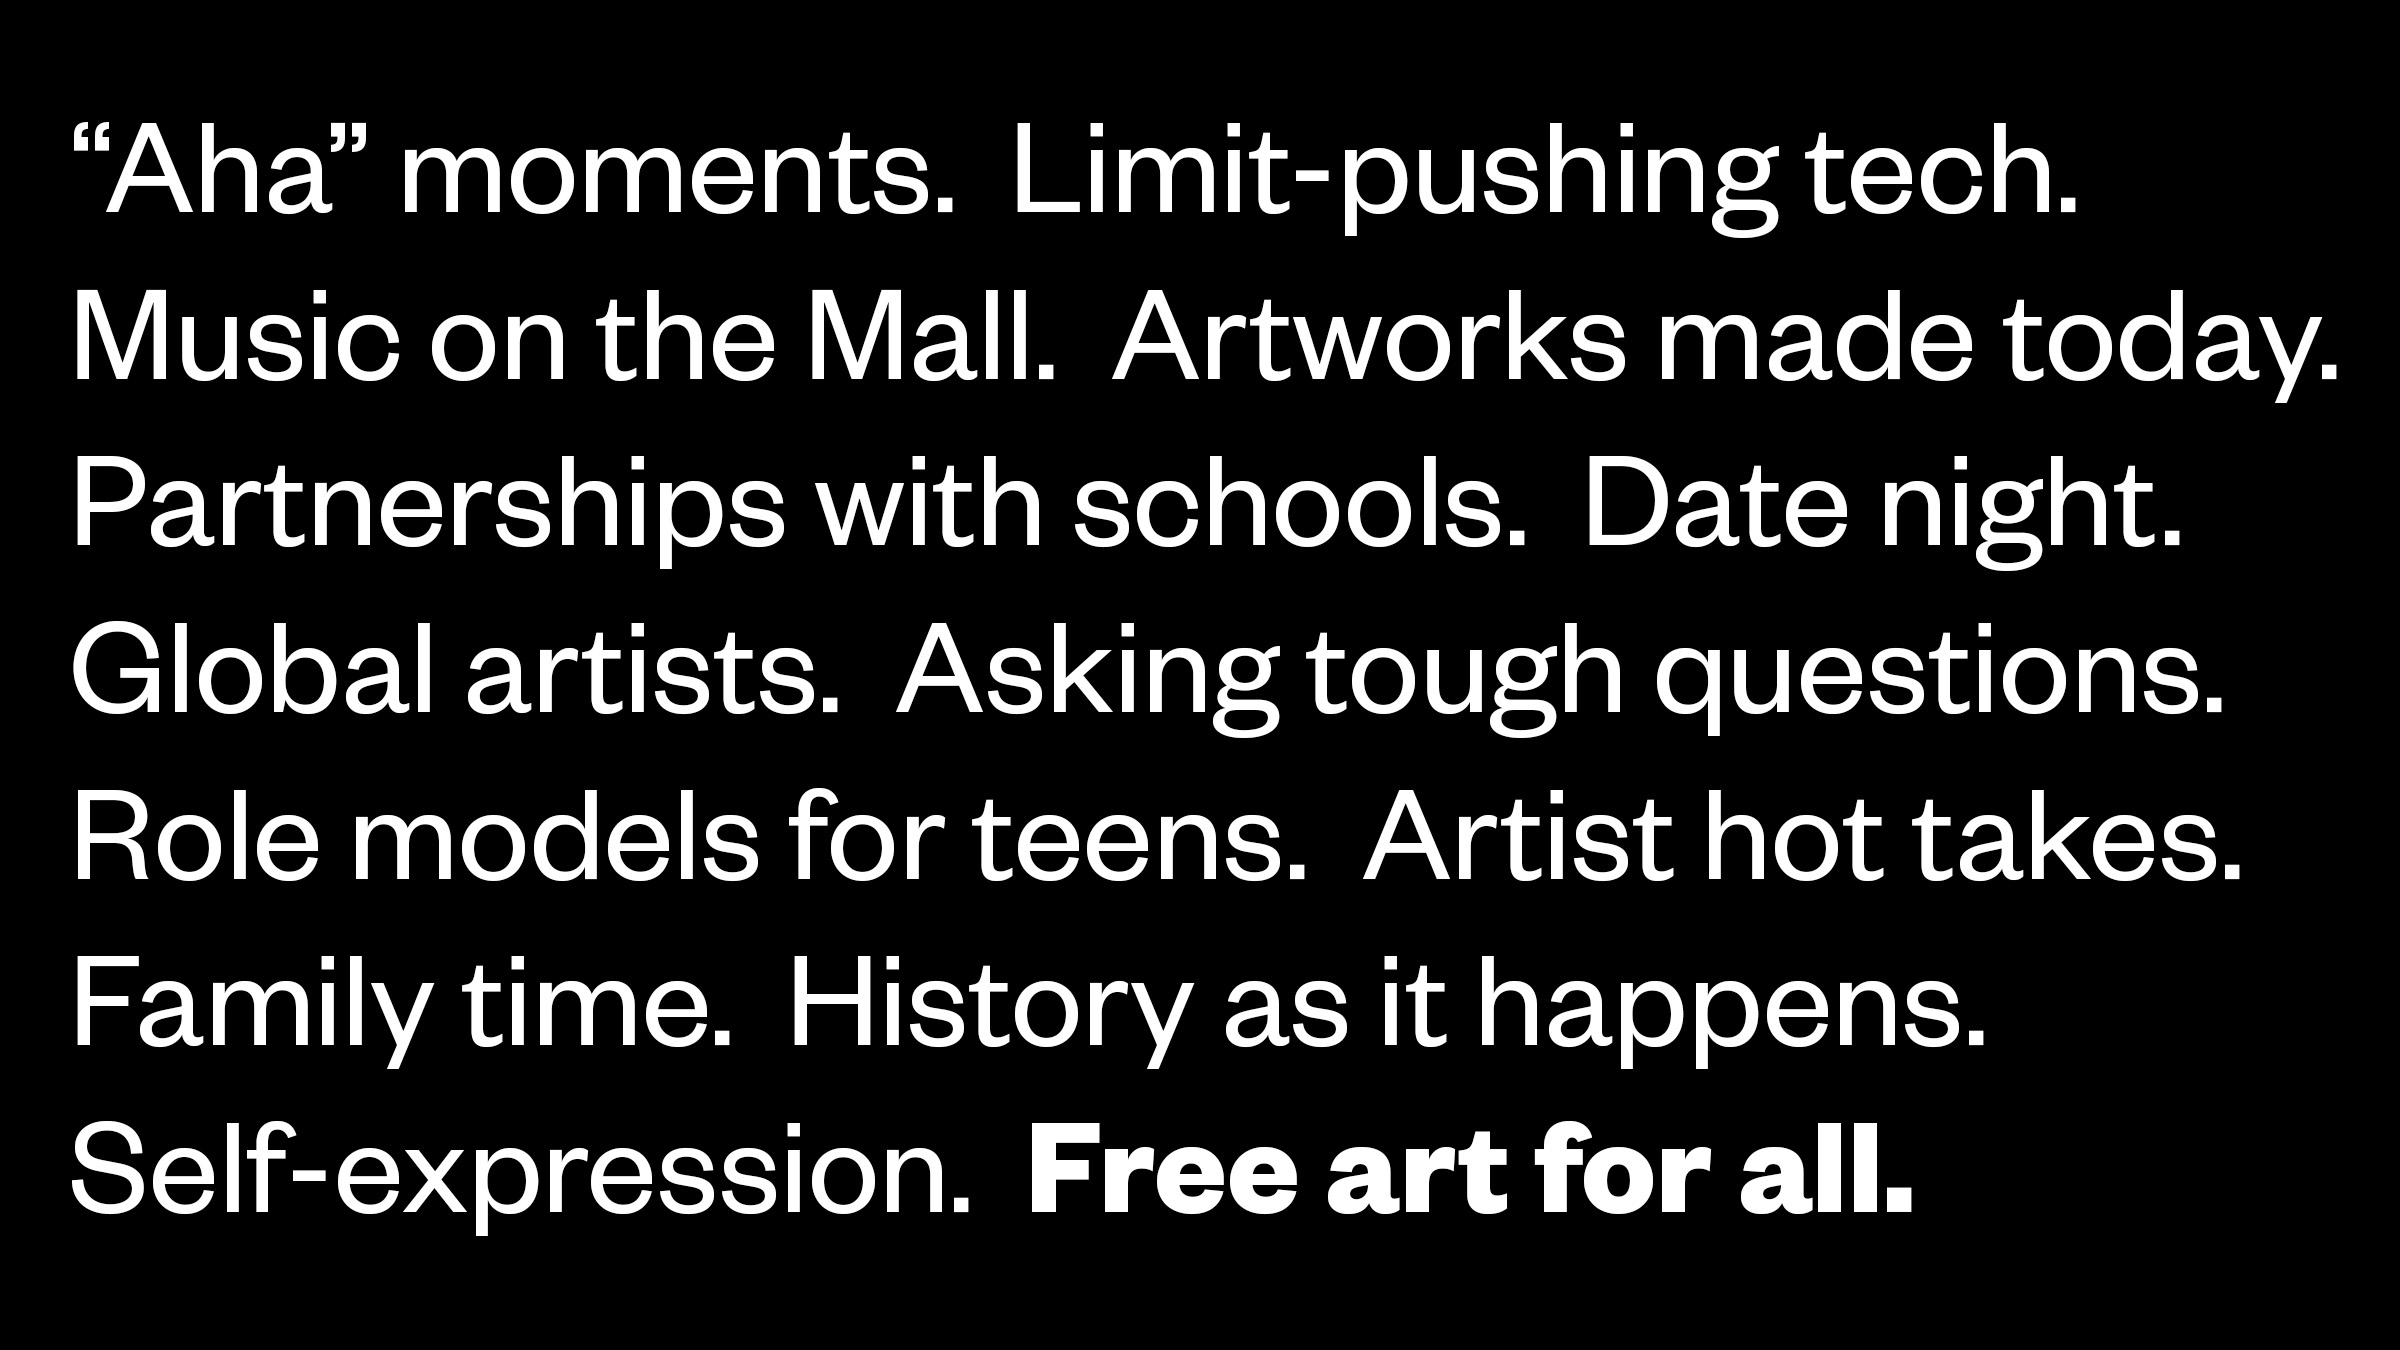 """""""Aha"""" moments. Limit-pushing tech. Music on the Mall. Artworks made today. Partnerships with schools. Date night. Global artists. Asking tough questions. Role models for teens. Artist hot takes. Family time. History as it happens. Self-expression. Free art for all."""